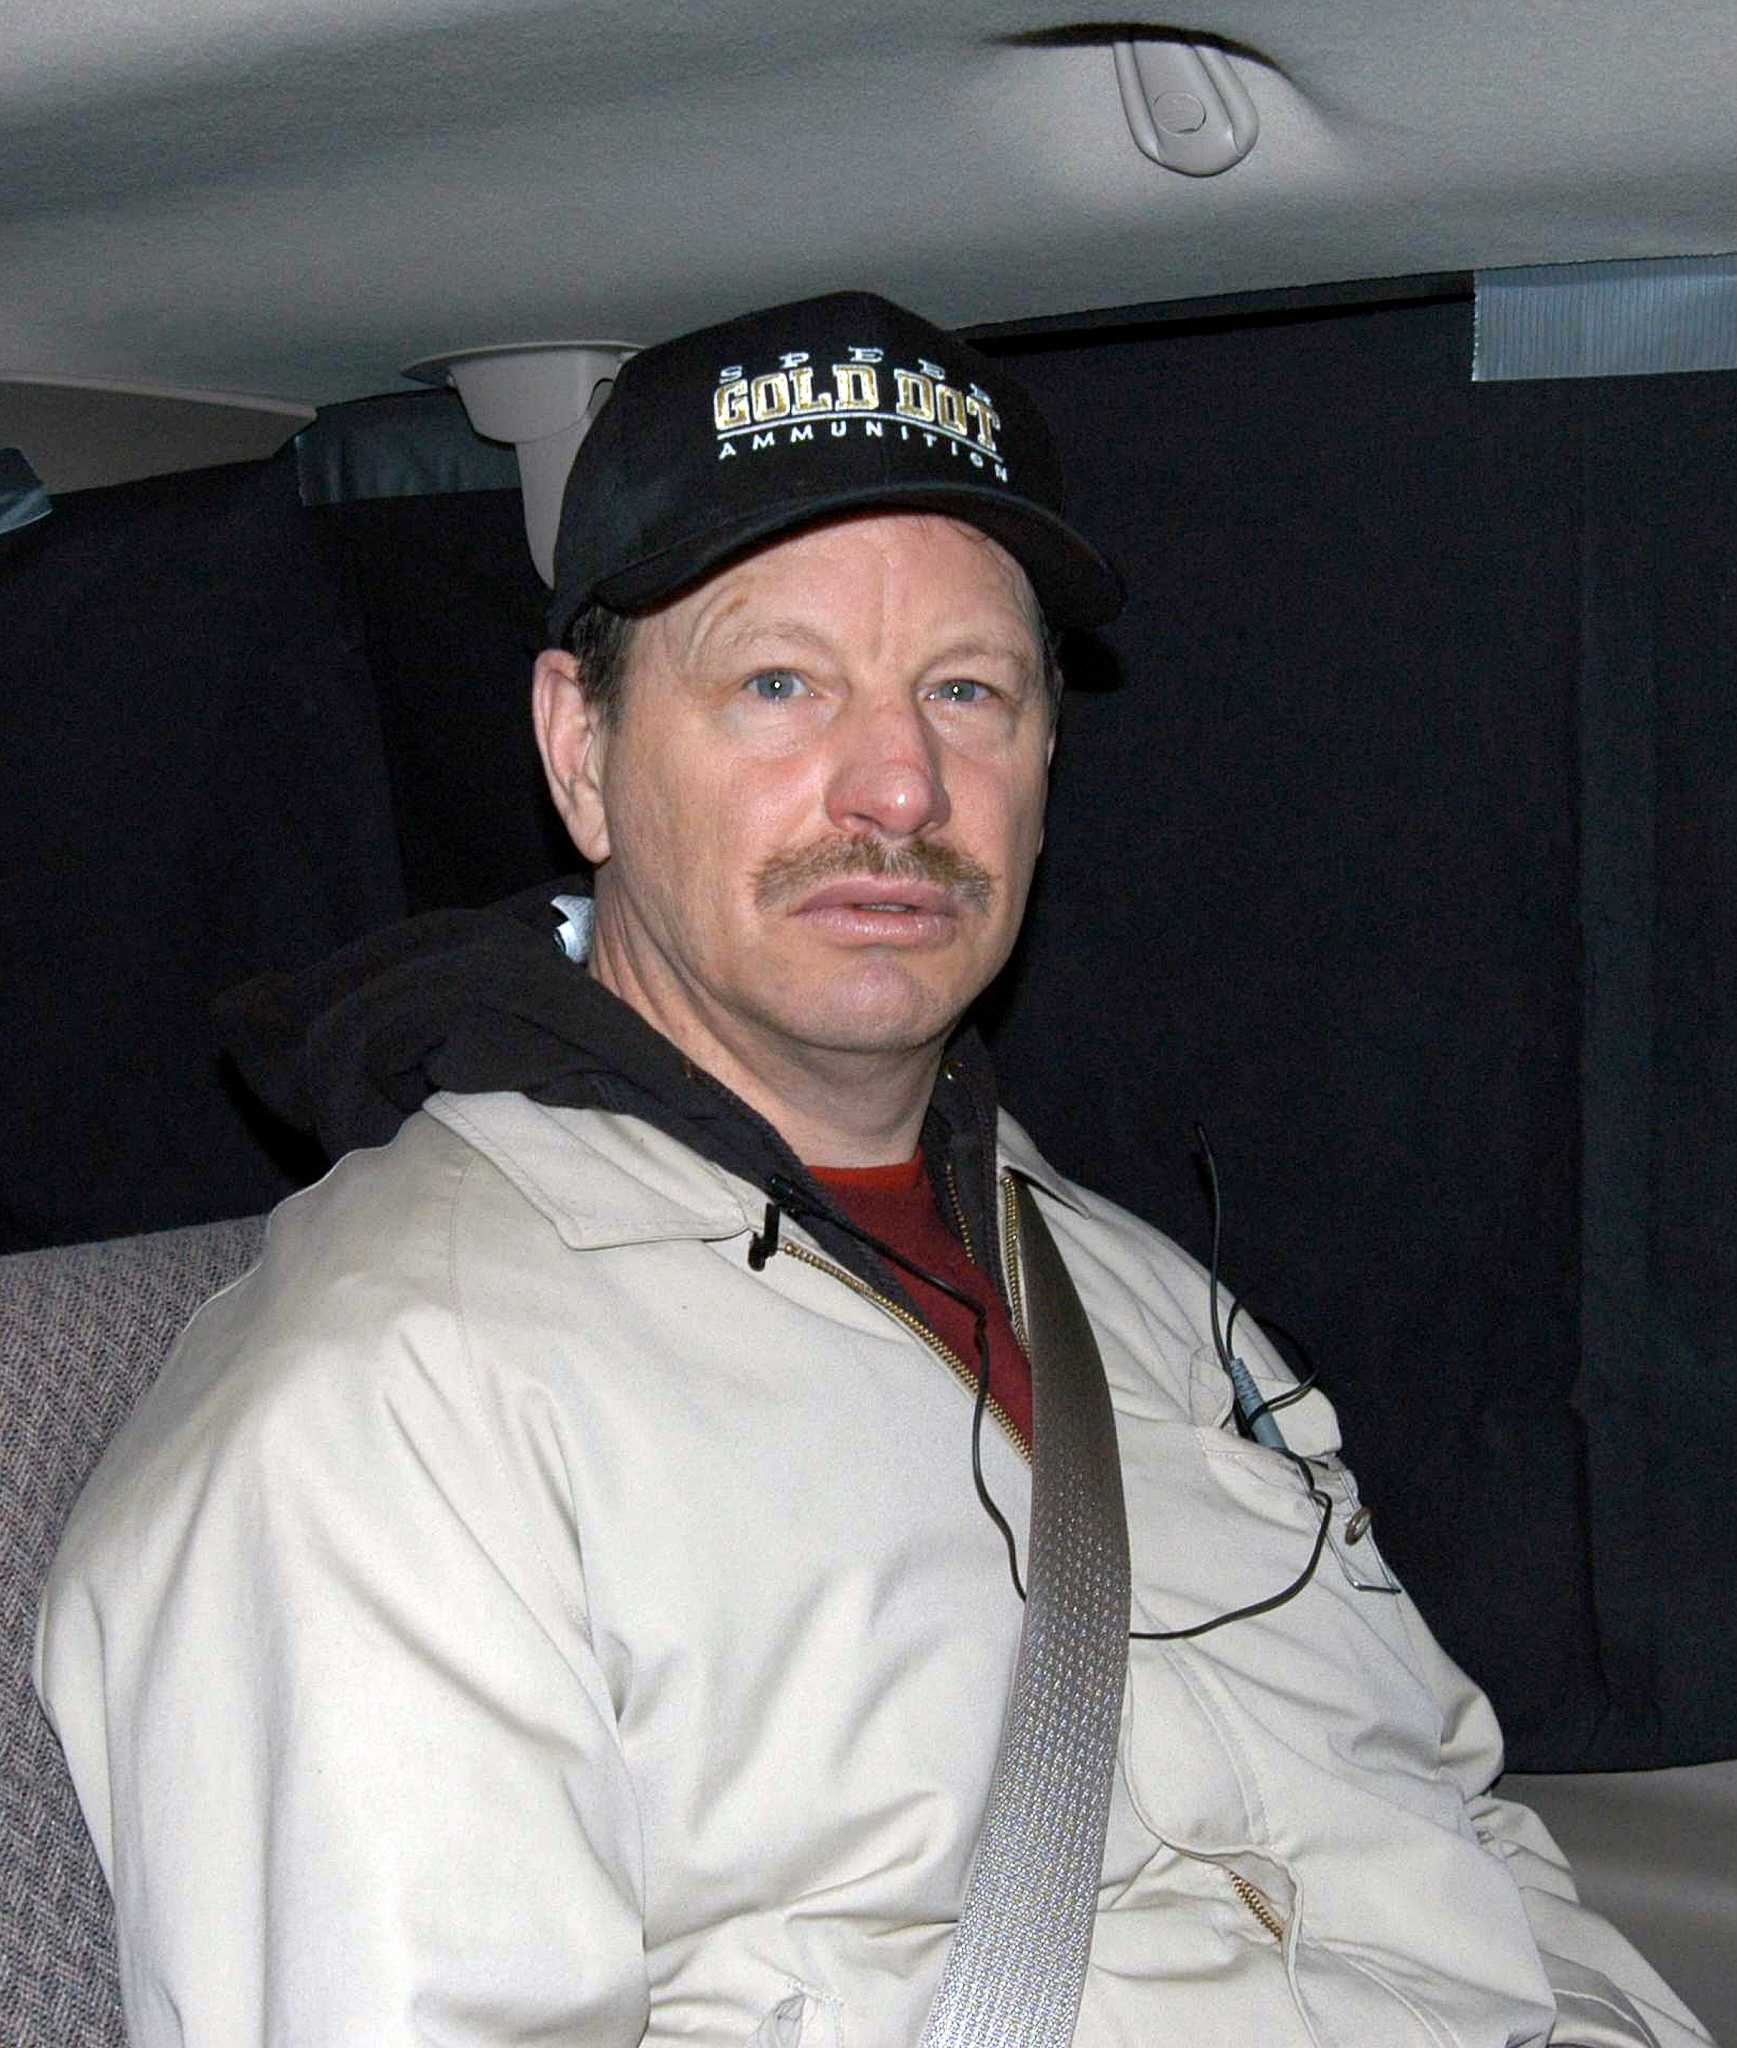 Official Gary Ridgway Transferred To Allow More Freedom